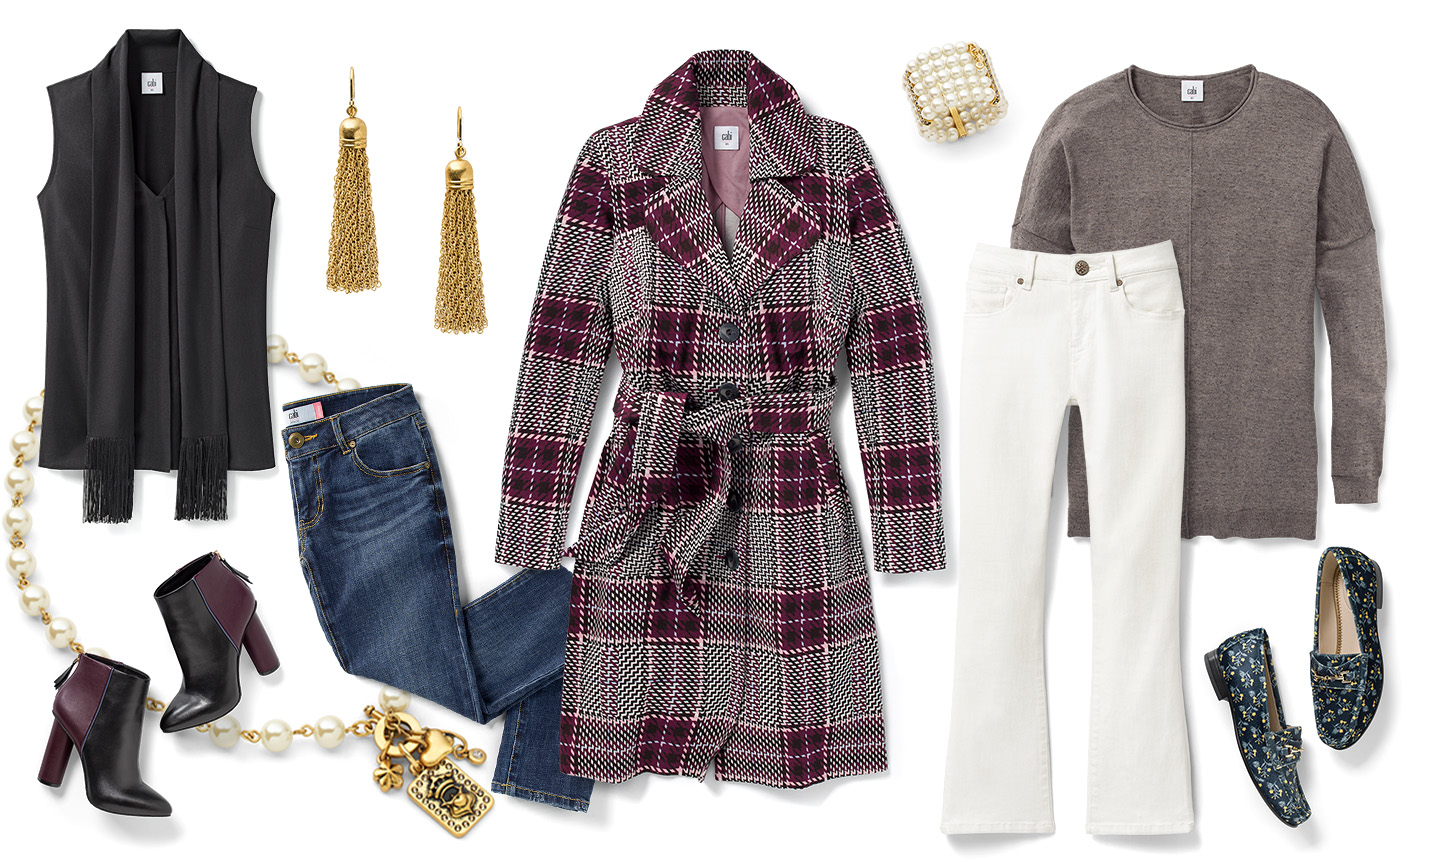 Outfits 2017 15 Items 30 Fabulous Fall Outfit Ideas Cabi Clothing